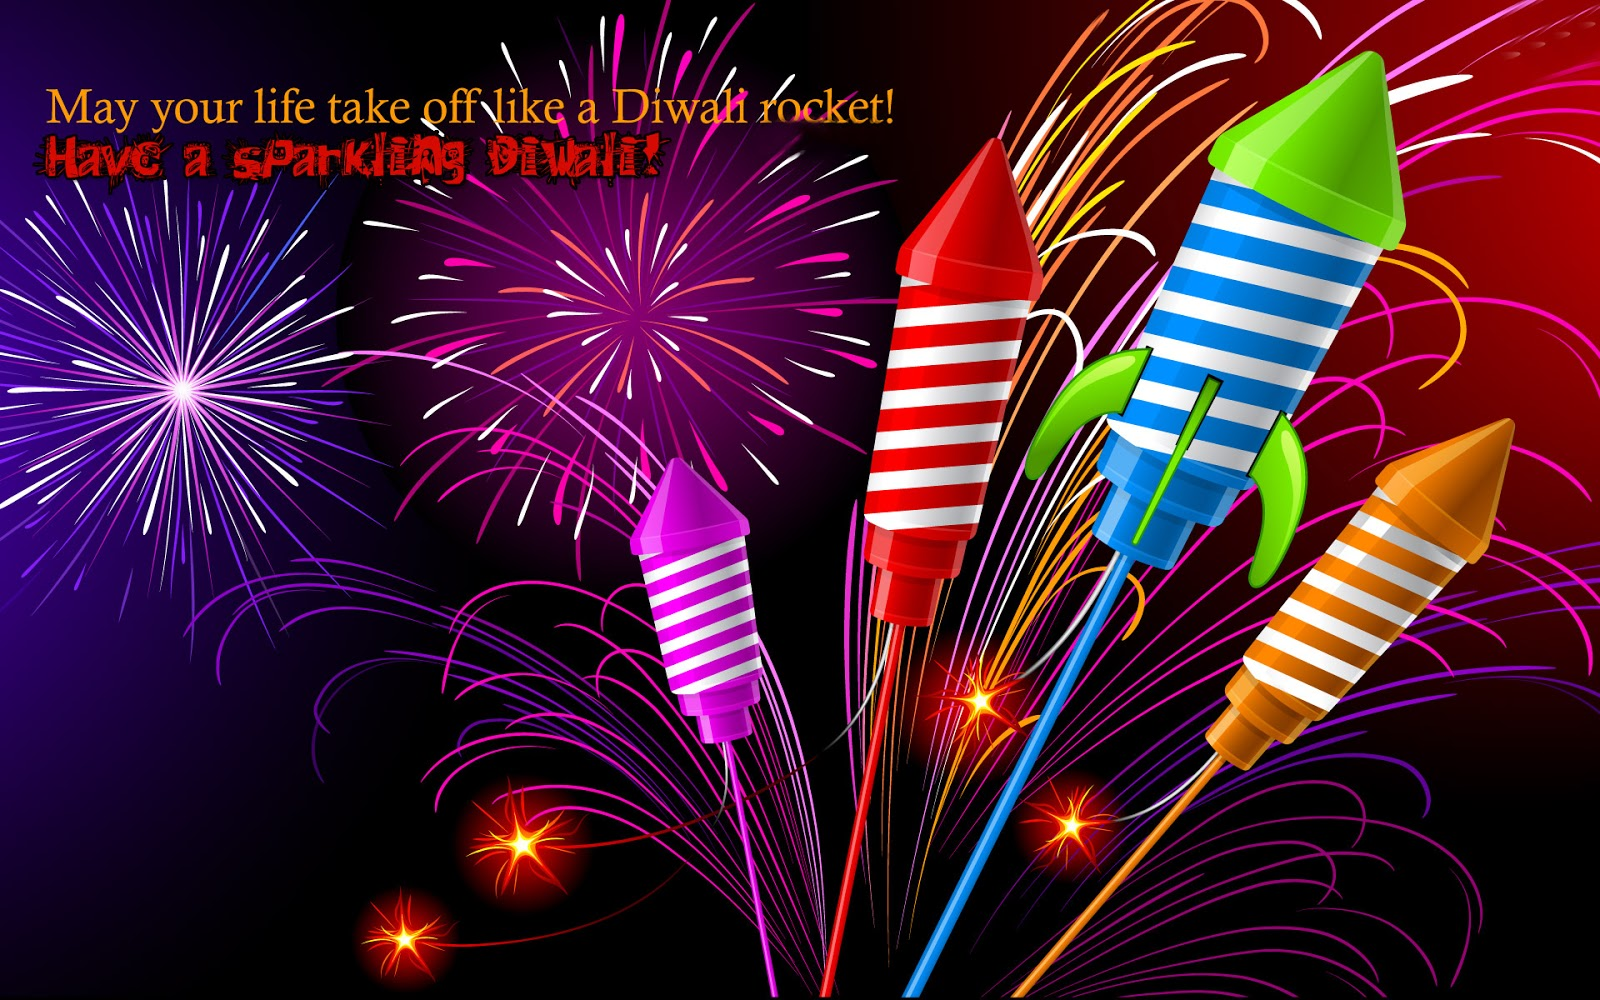 Happy Diwali 2013 Happy Diwali Fireworks and Crackers HD Wallpapers 1600x1000